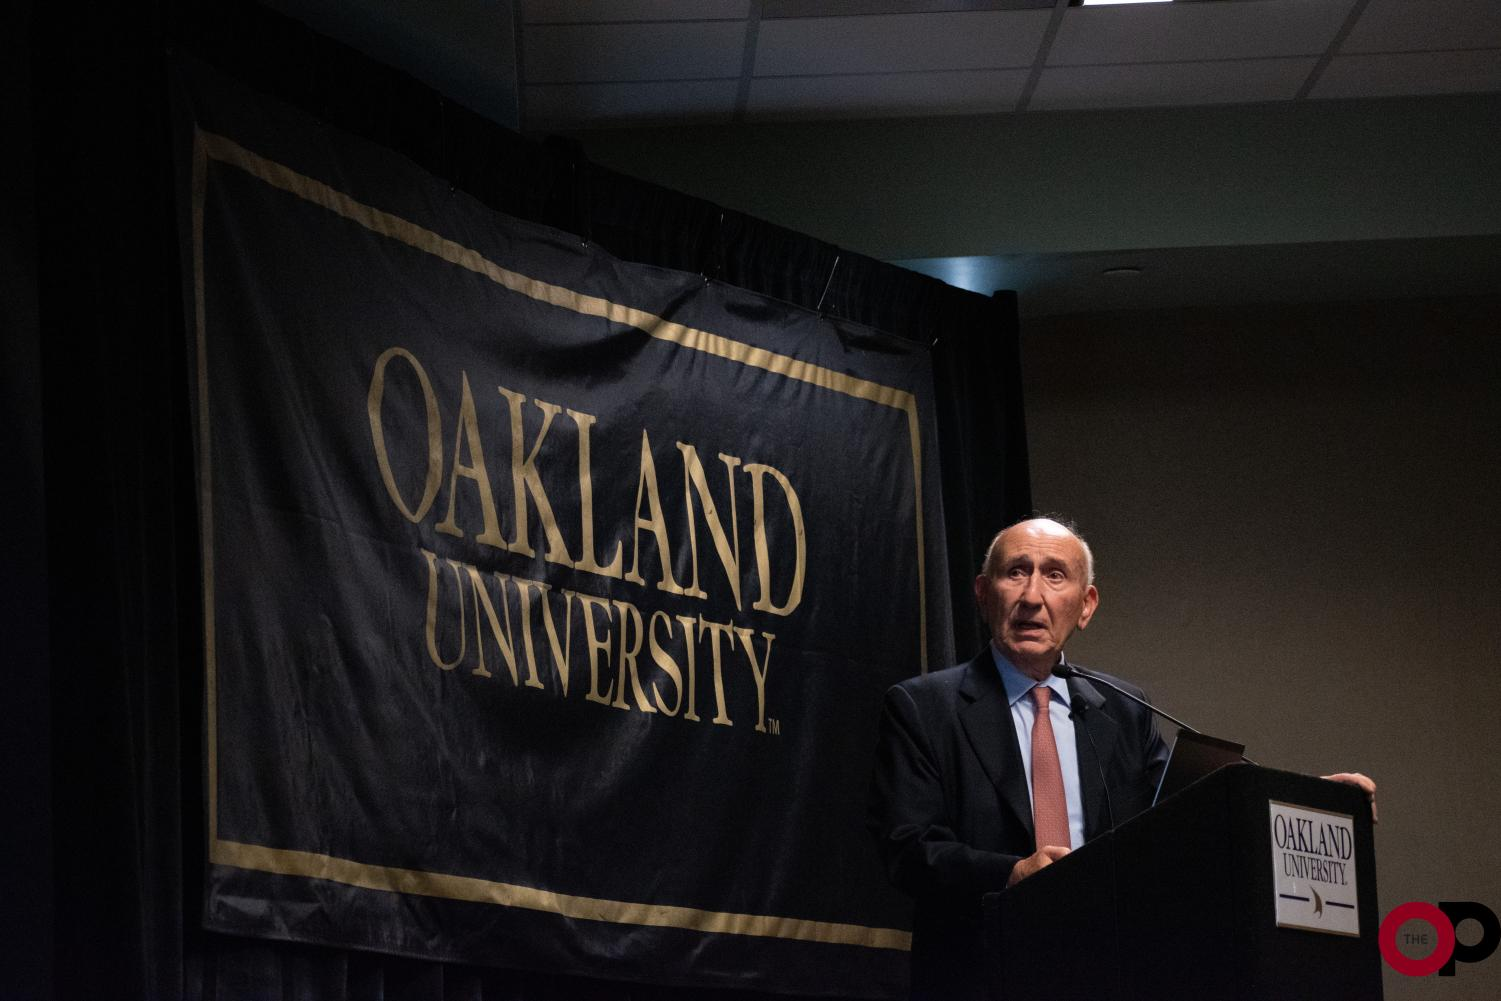 Harvard University professor Evangelos Gragoudas discusses eye tumors and the use of proton beam irradiation therapy on Friday, Sept. 27 in the Oakland Center.